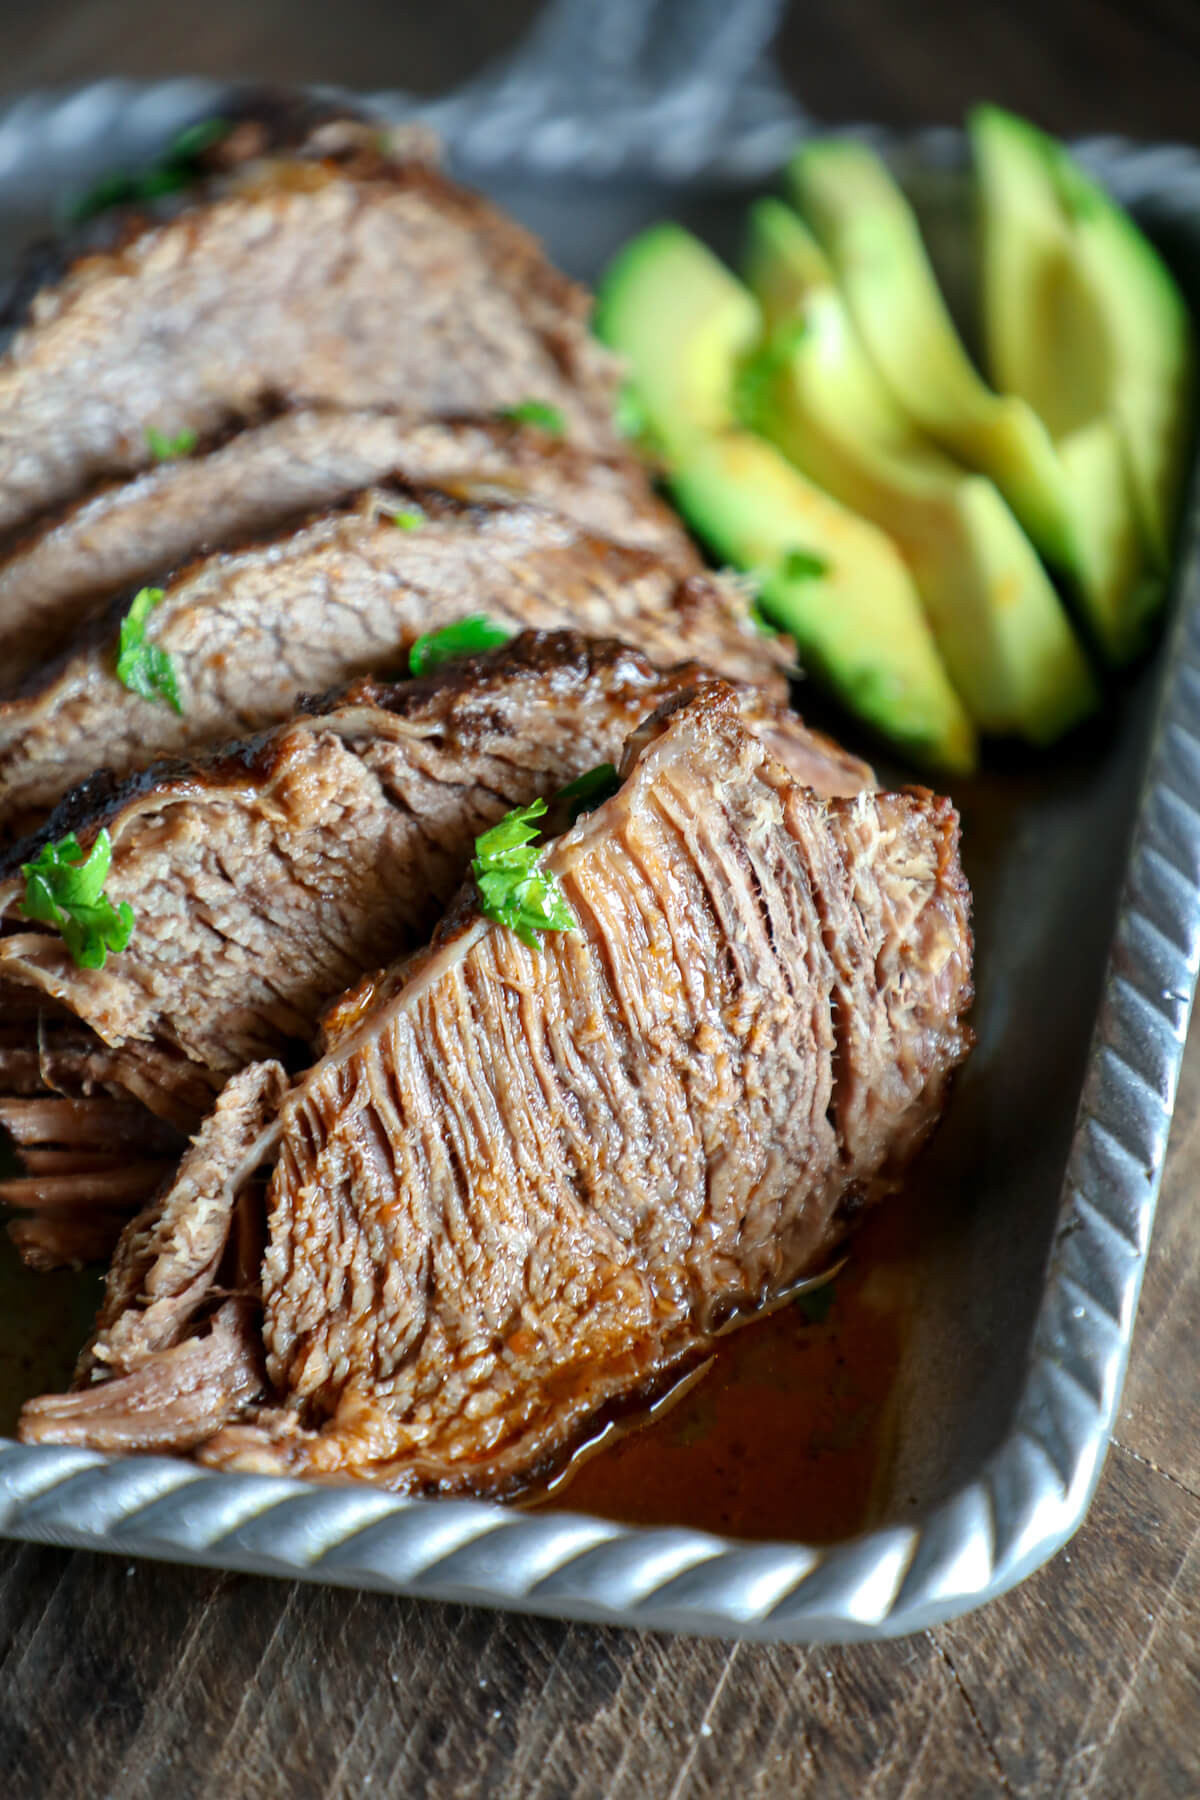 Instant Pot Beef Keto  Keto Beef Brisket in the Instant Pot Low Carb